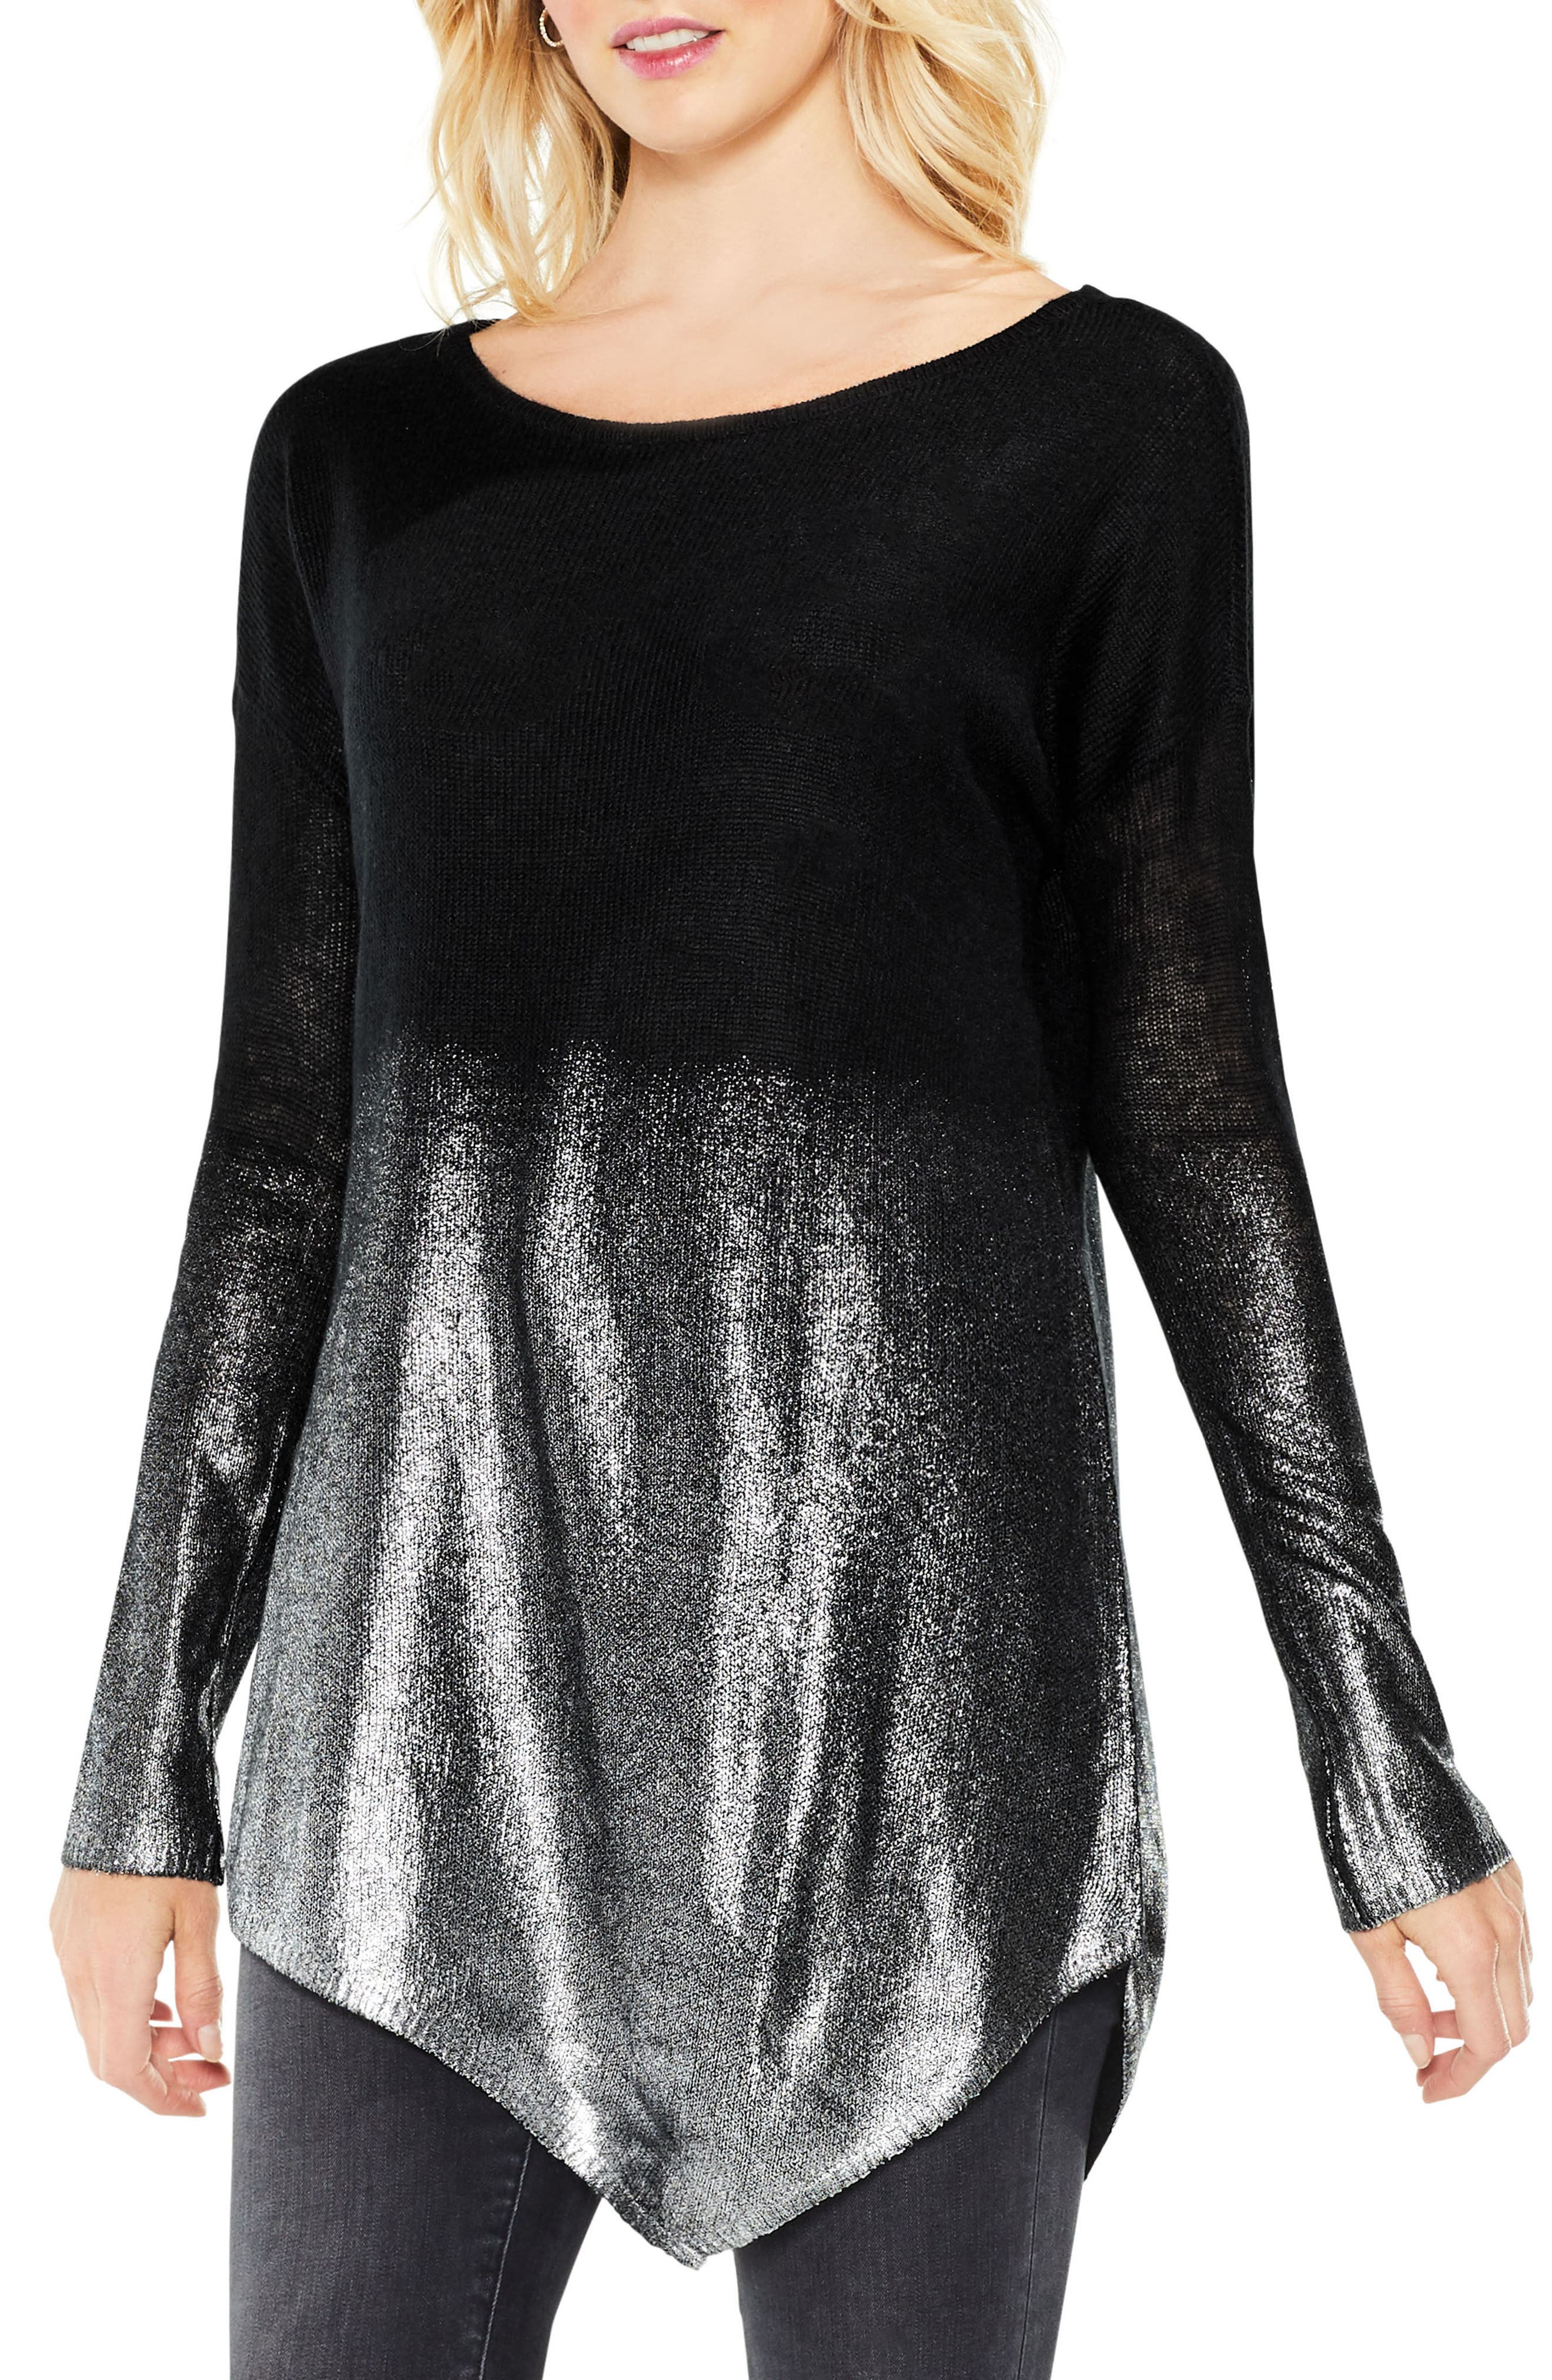 Two by Vince Camuto Asymmetrical Metallic Ombré Sweater